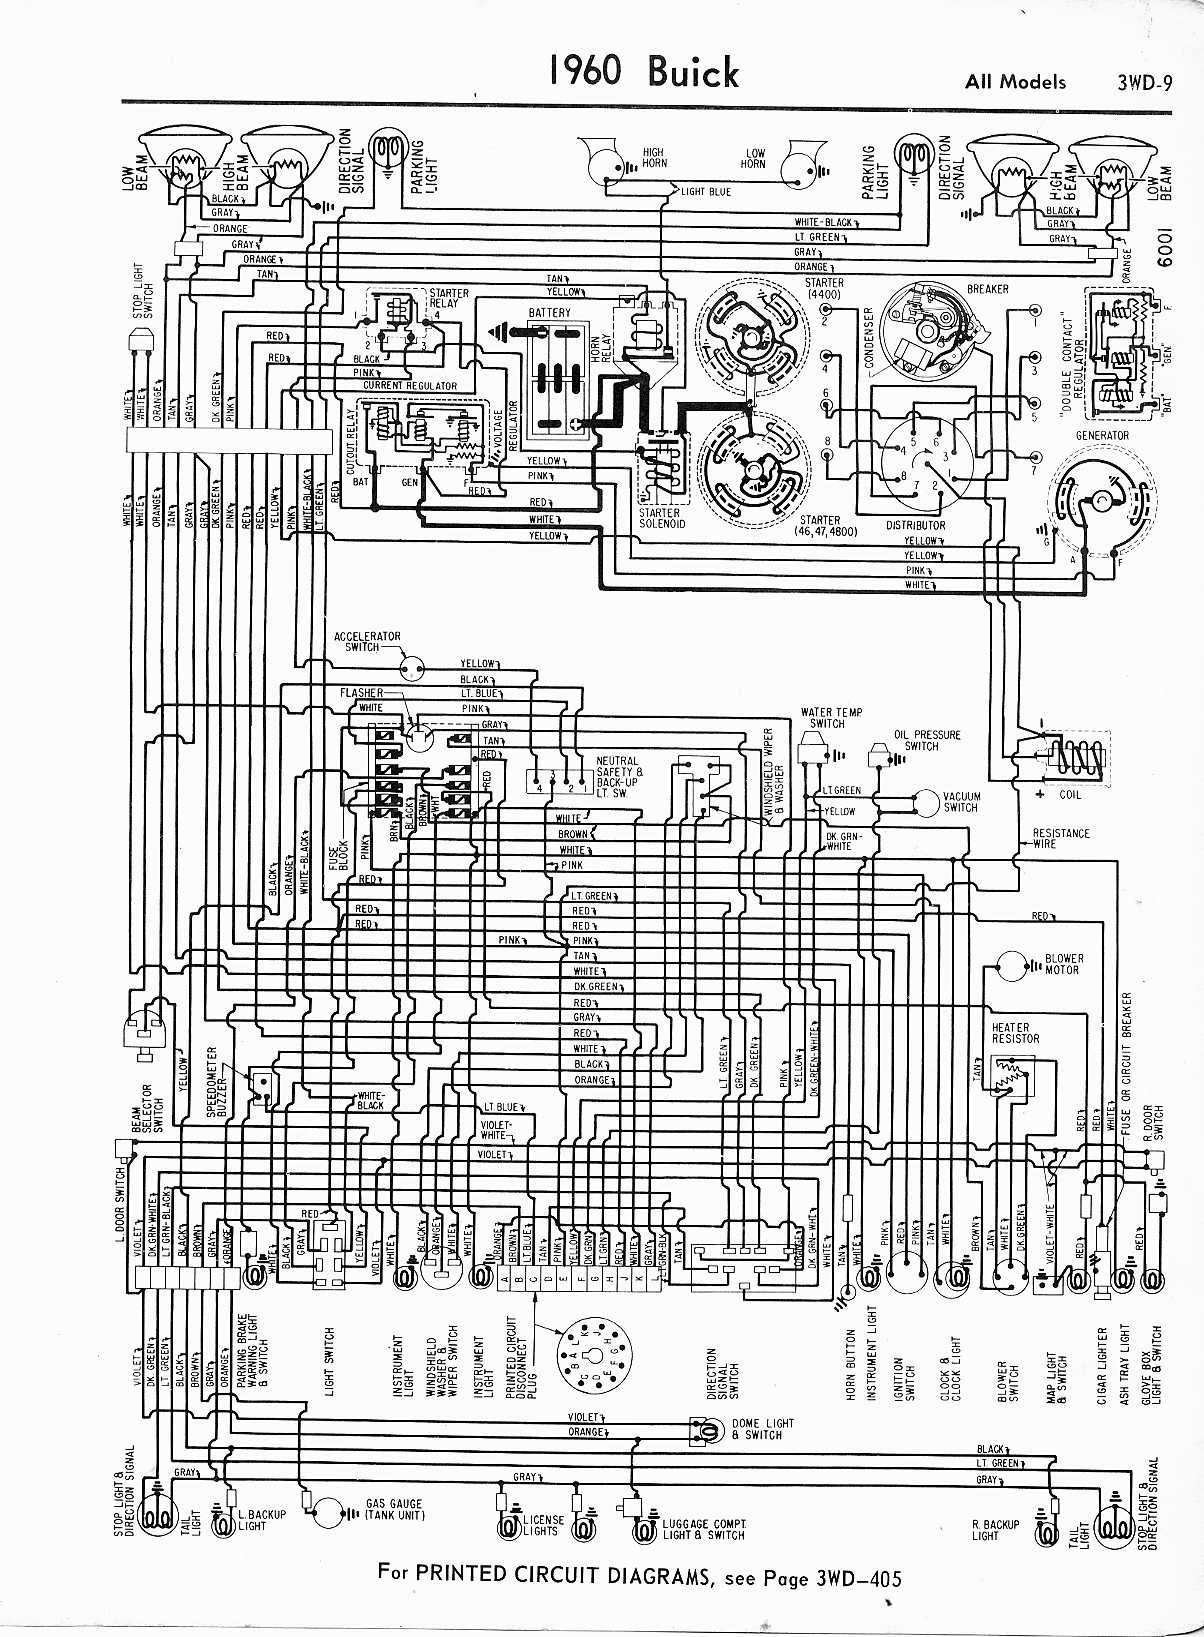 1994 Buick Lesabre Ignition Switch Wiring Diagram - Wiring ...